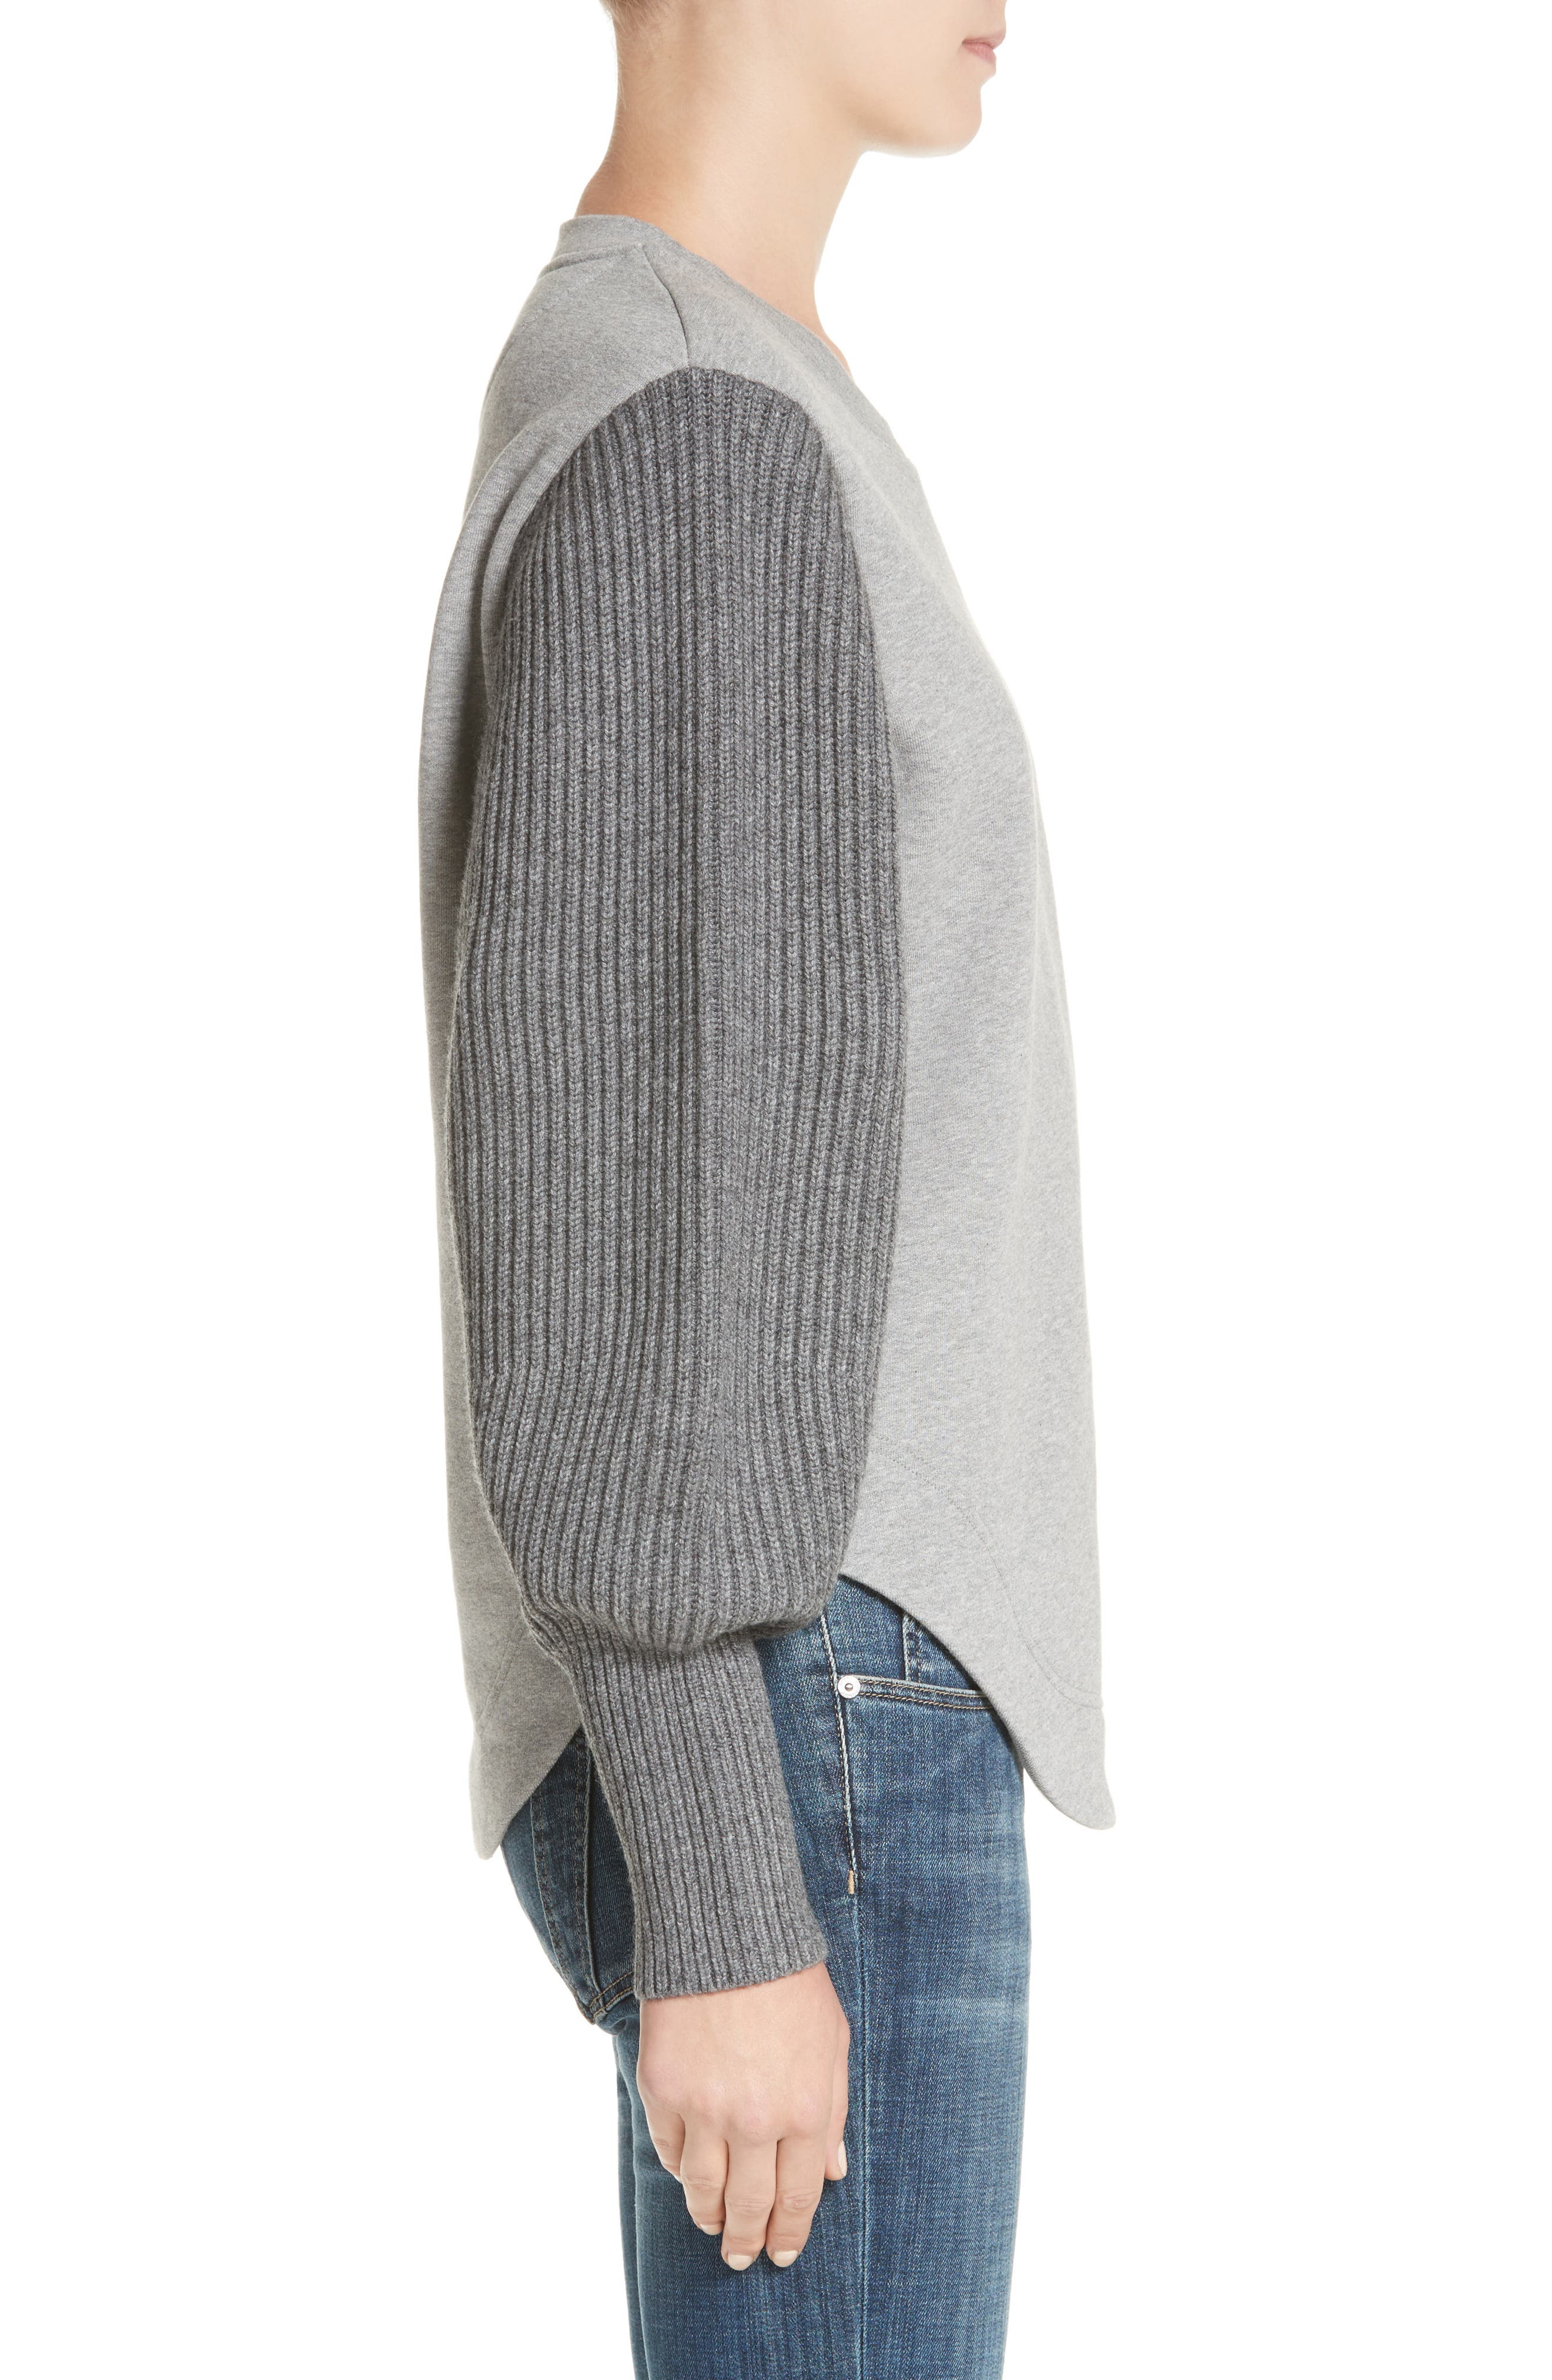 Alcobaca Rib Knit Sleeve Sweatshirt,                             Alternate thumbnail 3, color,                             050